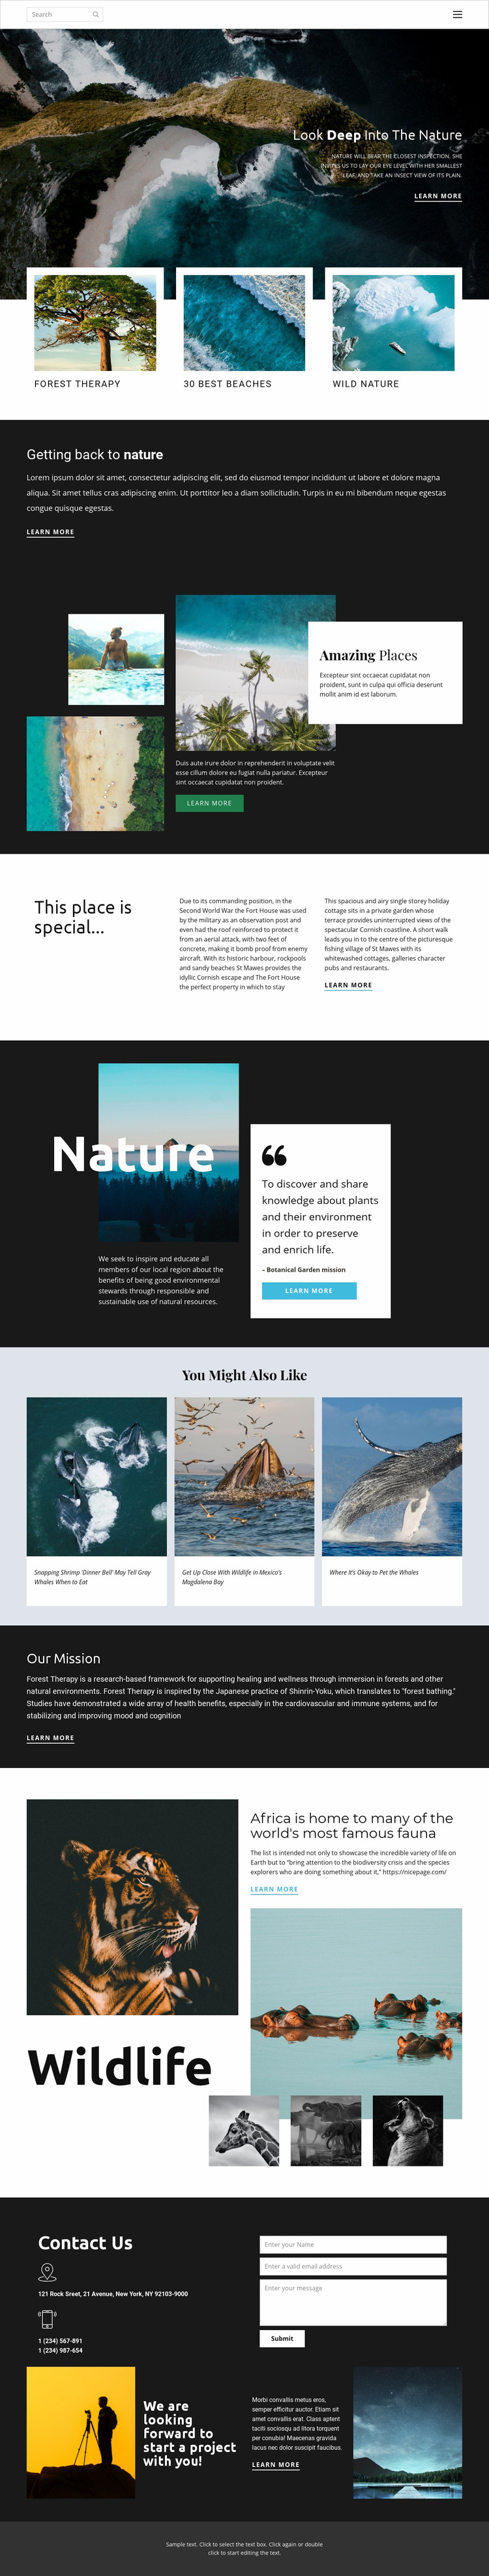 Exploring wildlife and nature Web Page Design